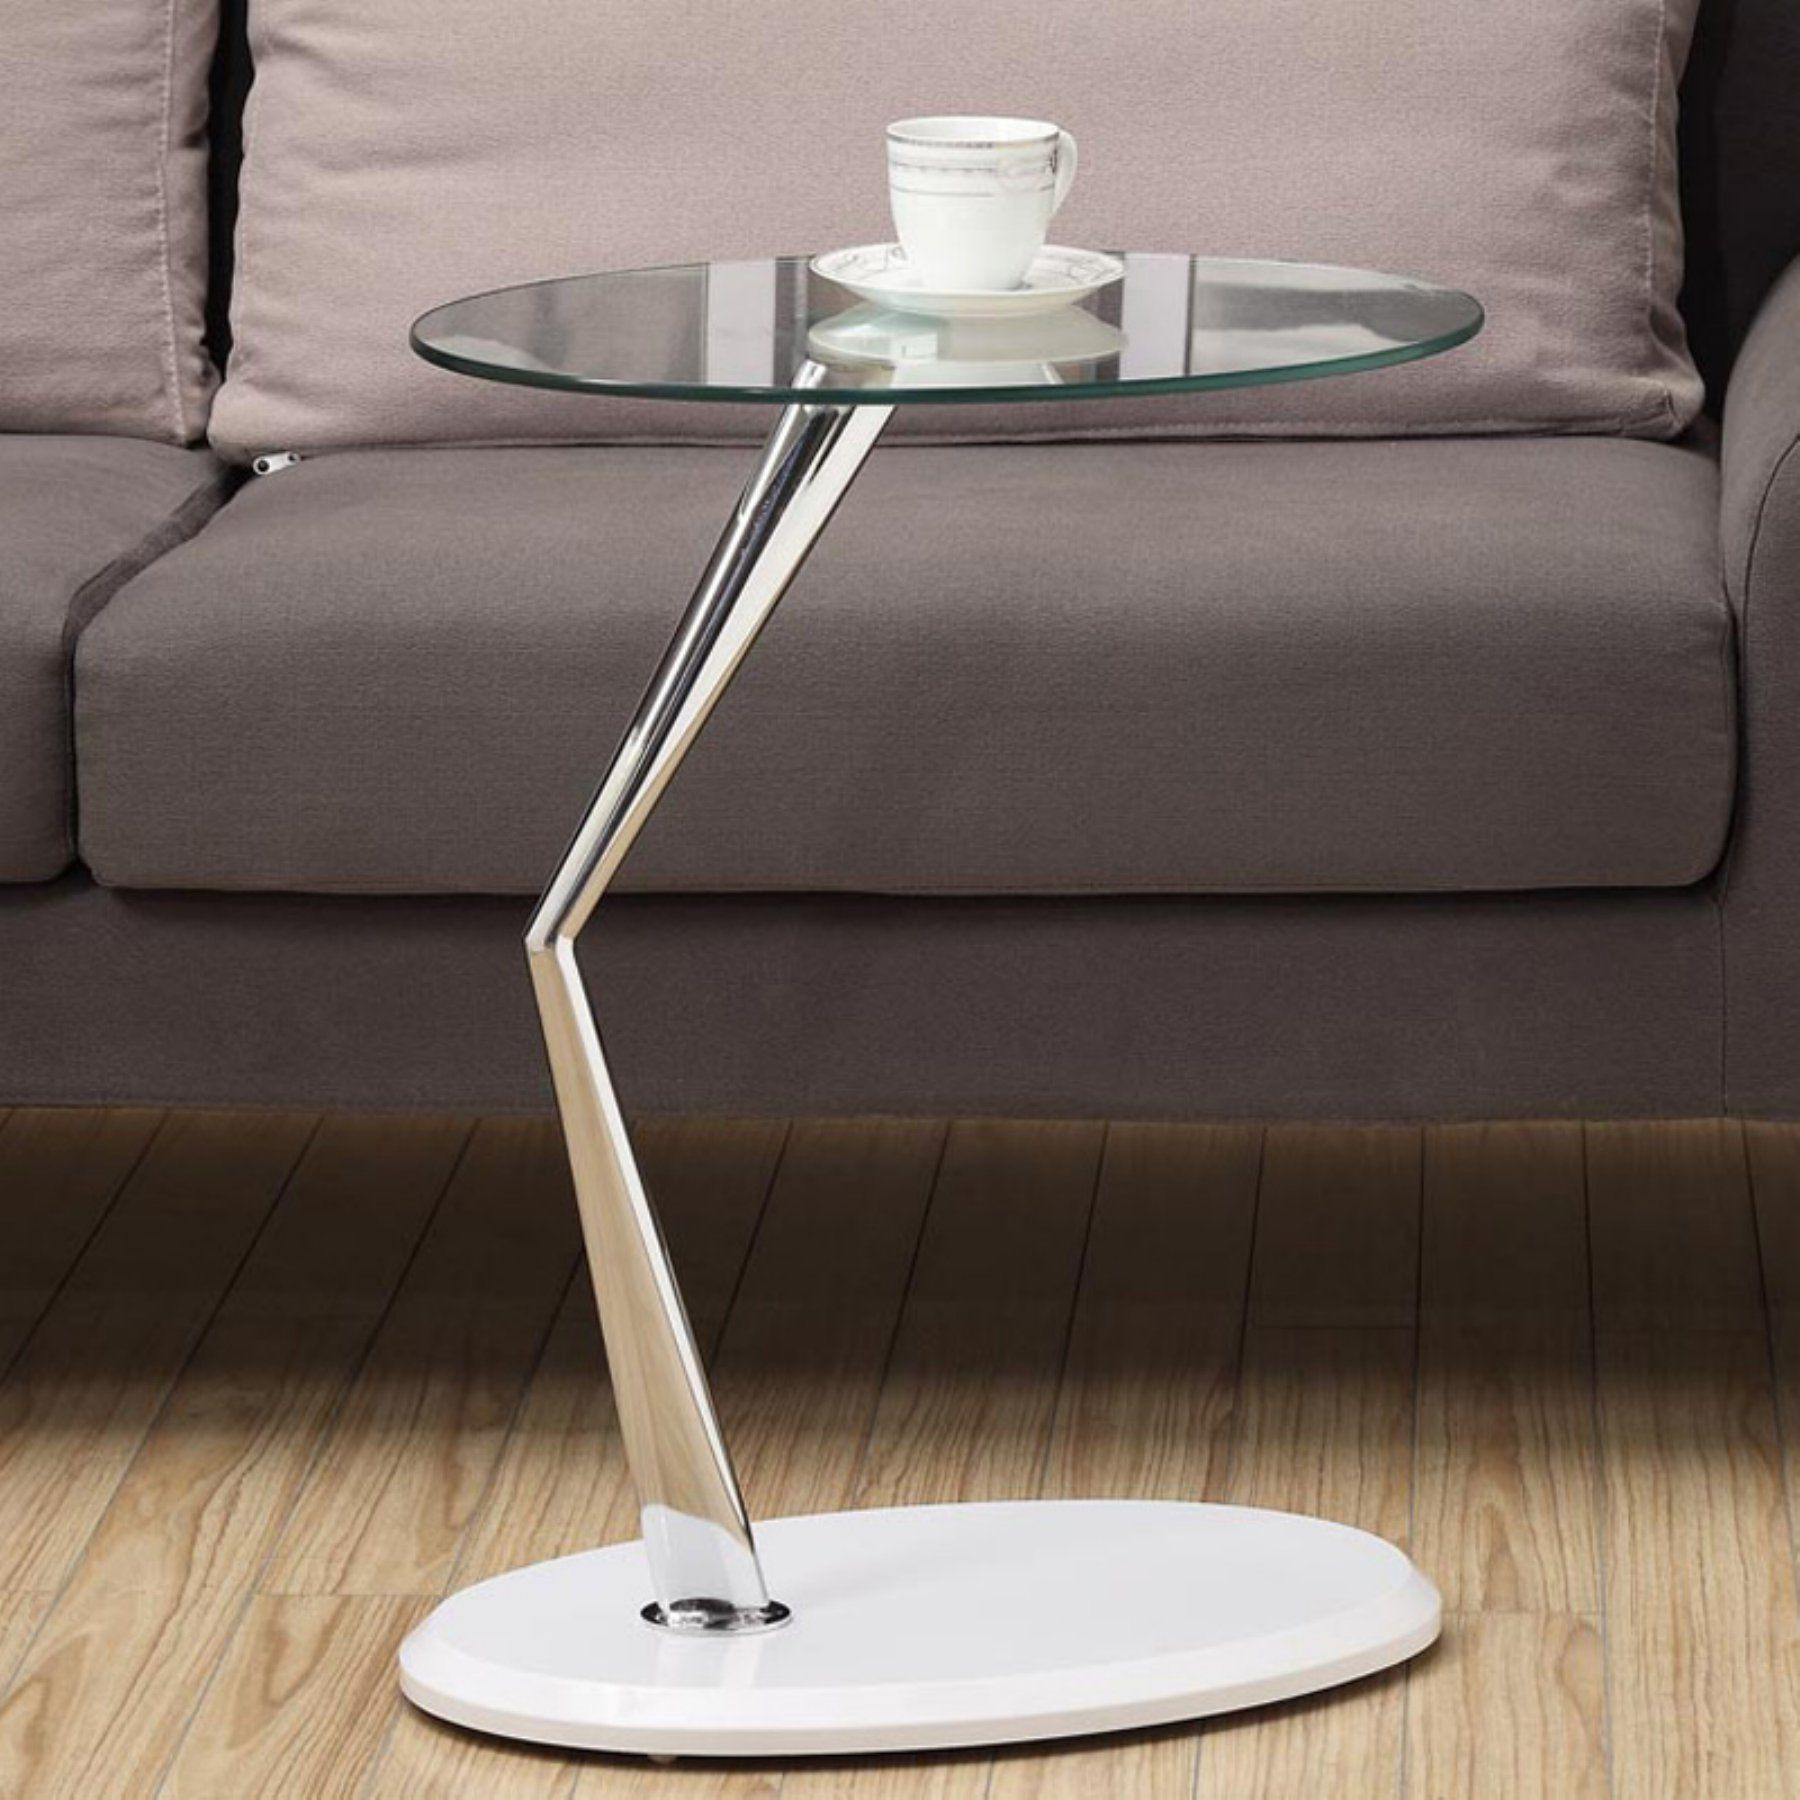 monarch metal accent table with tempered glass glossy white clarissa chrome placemat set chinese ginger jar lamps acrylic nest tables illusion modern lamp designs adirondack